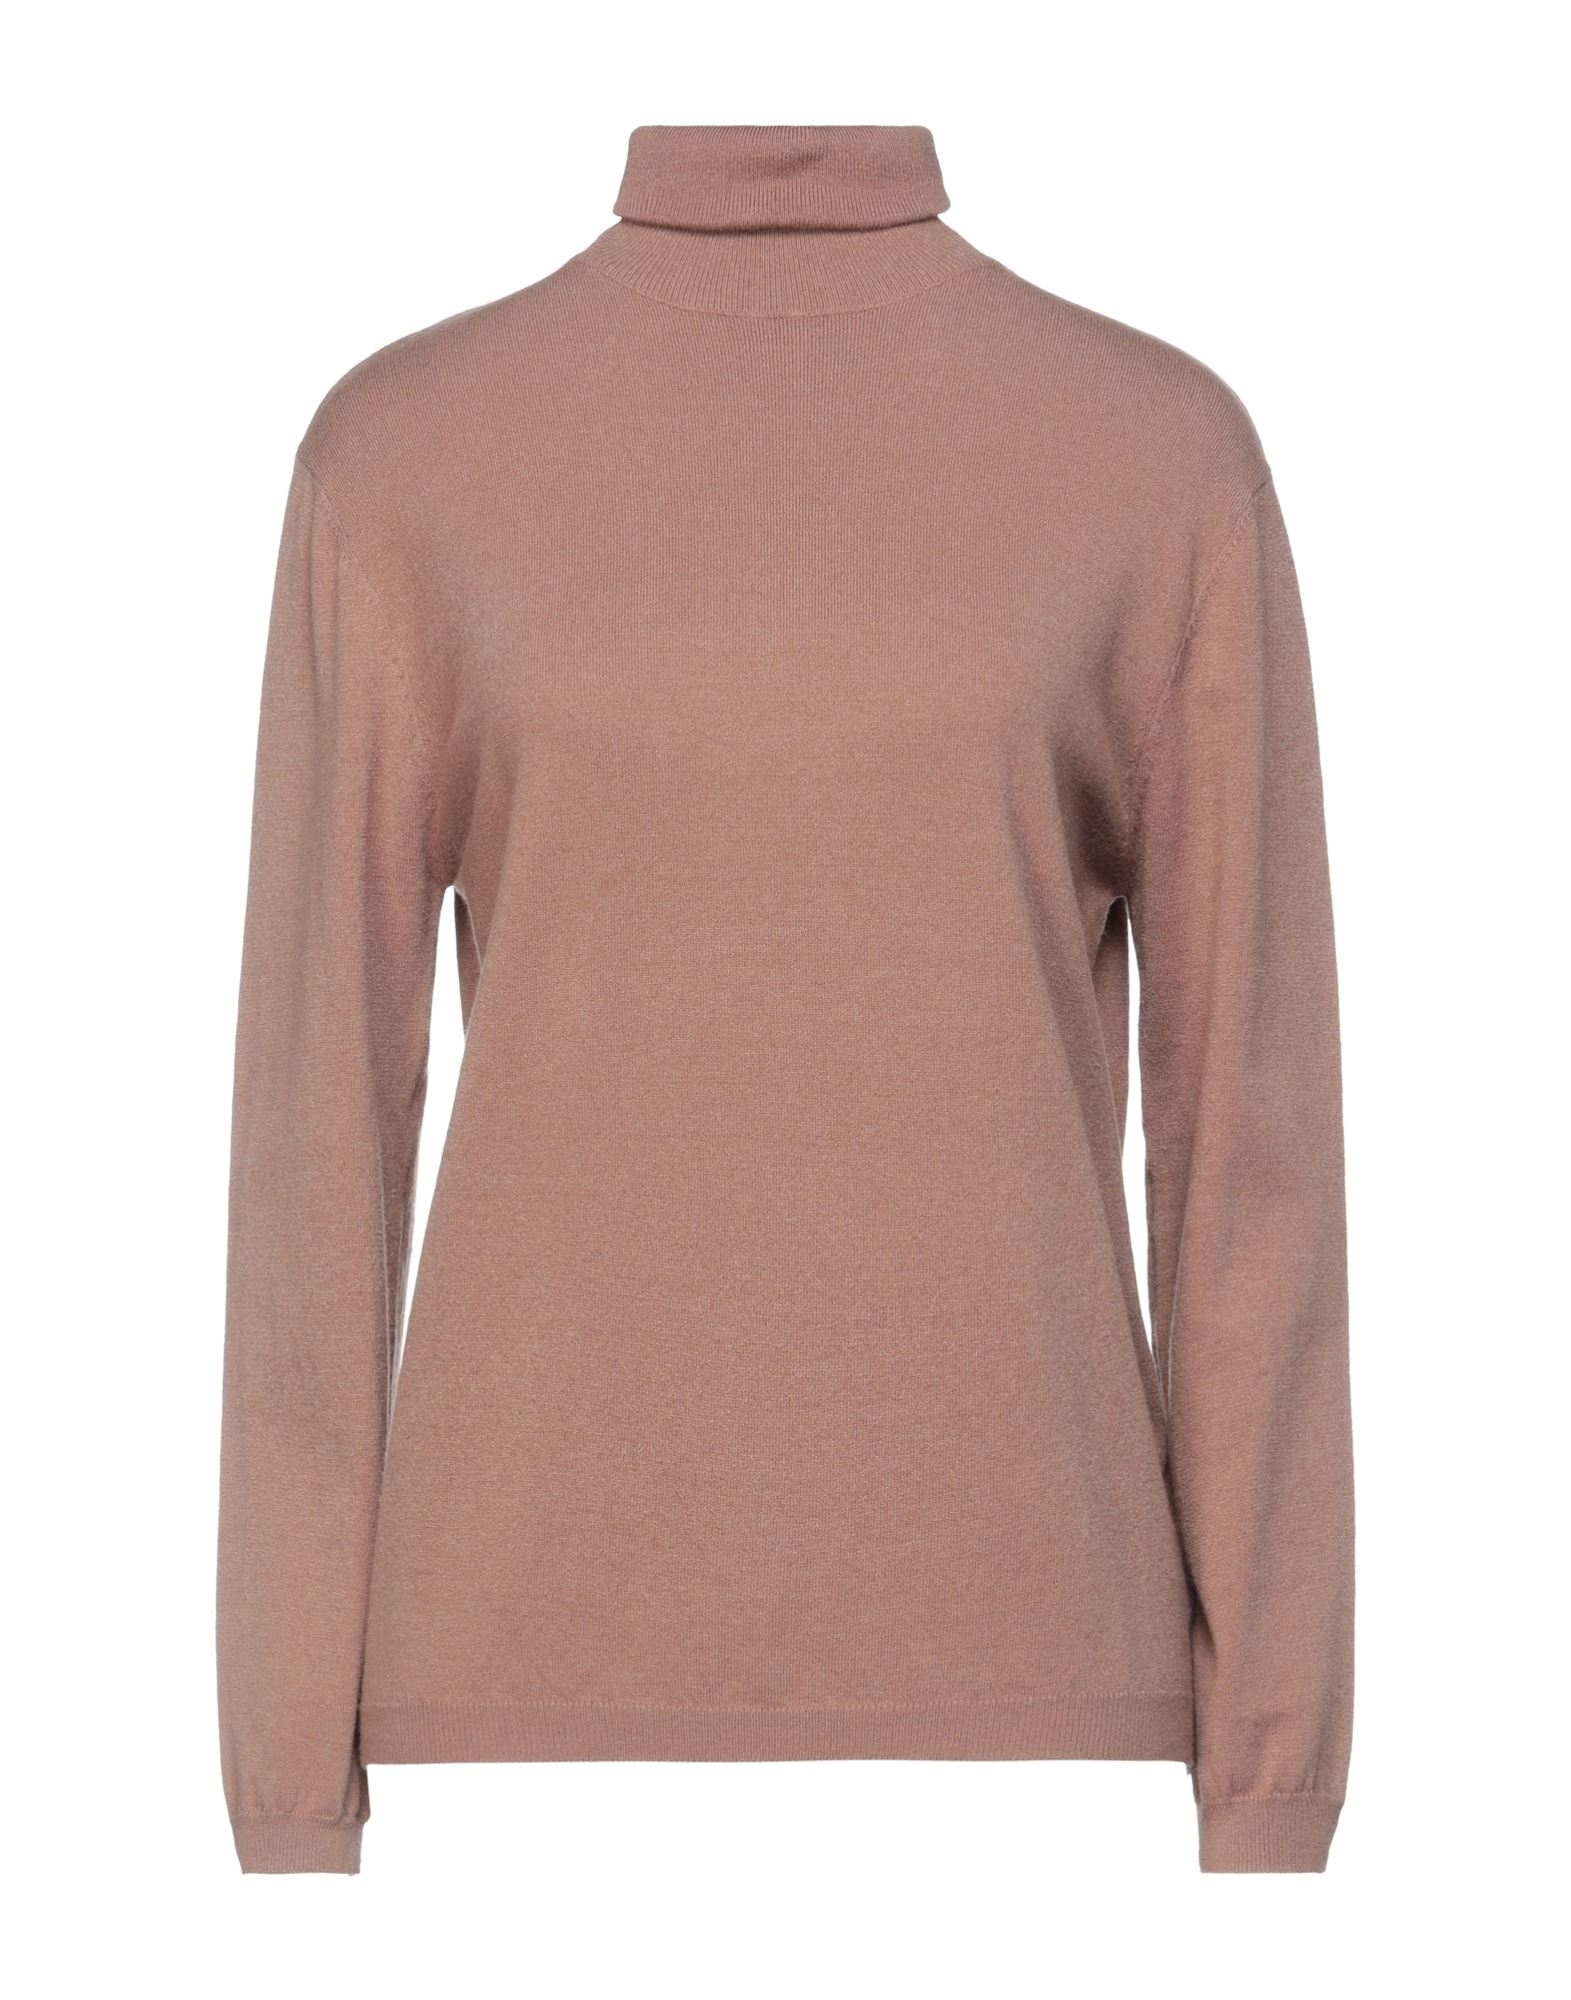 CRISTINAEFFE Turtlenecks - Item 14121378